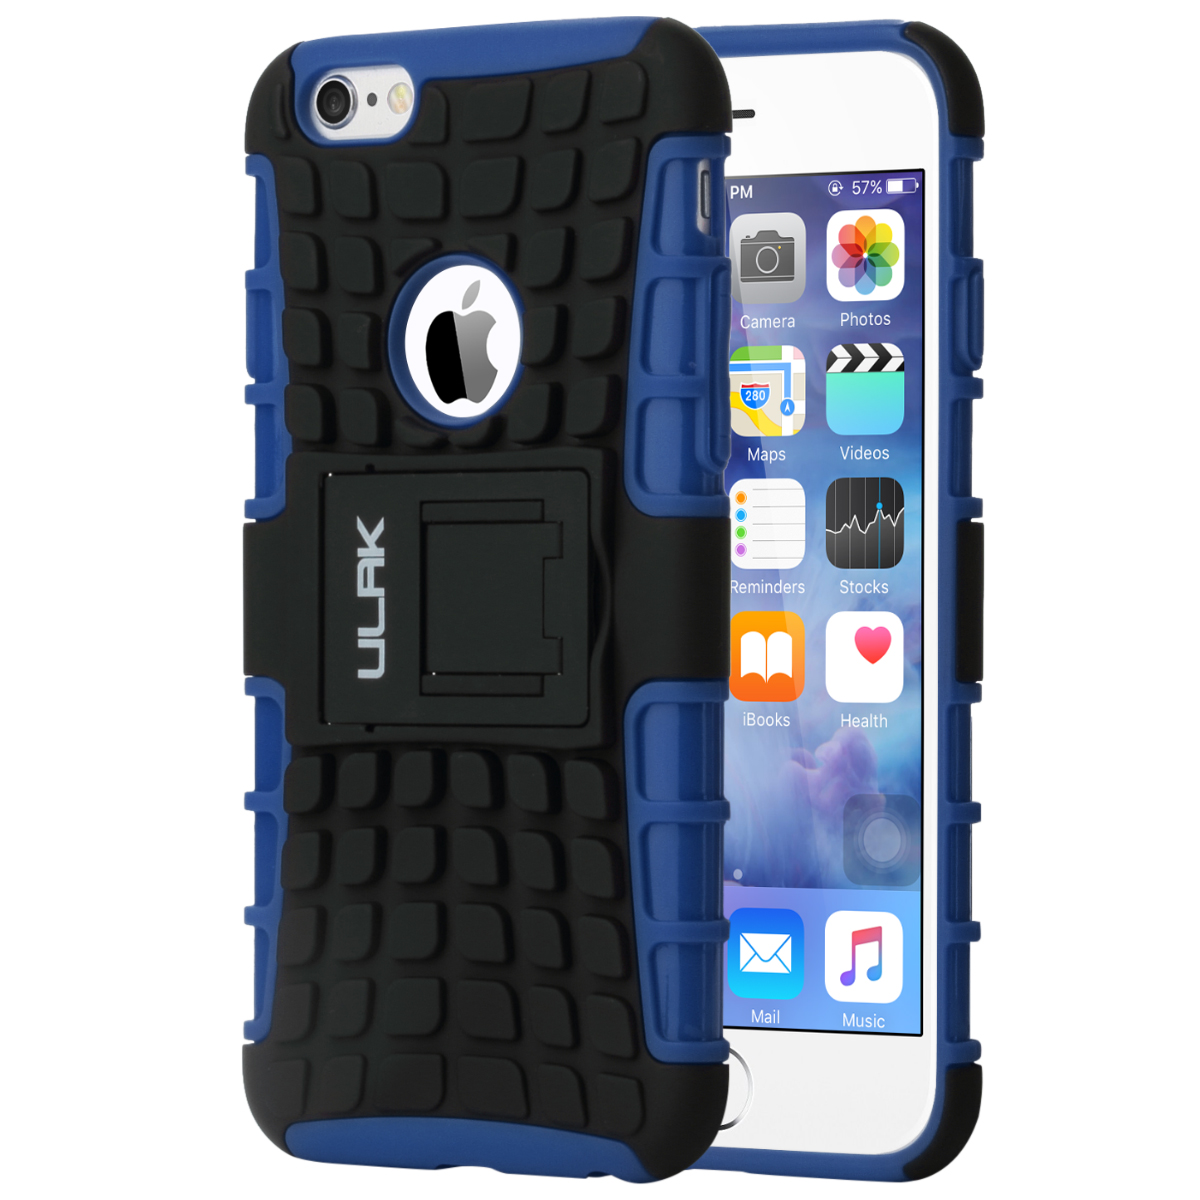 ULAK iPhone 6 Case 4.7 Inch with Hybrid Dual Layer Hard Rugged Case With Kickstand